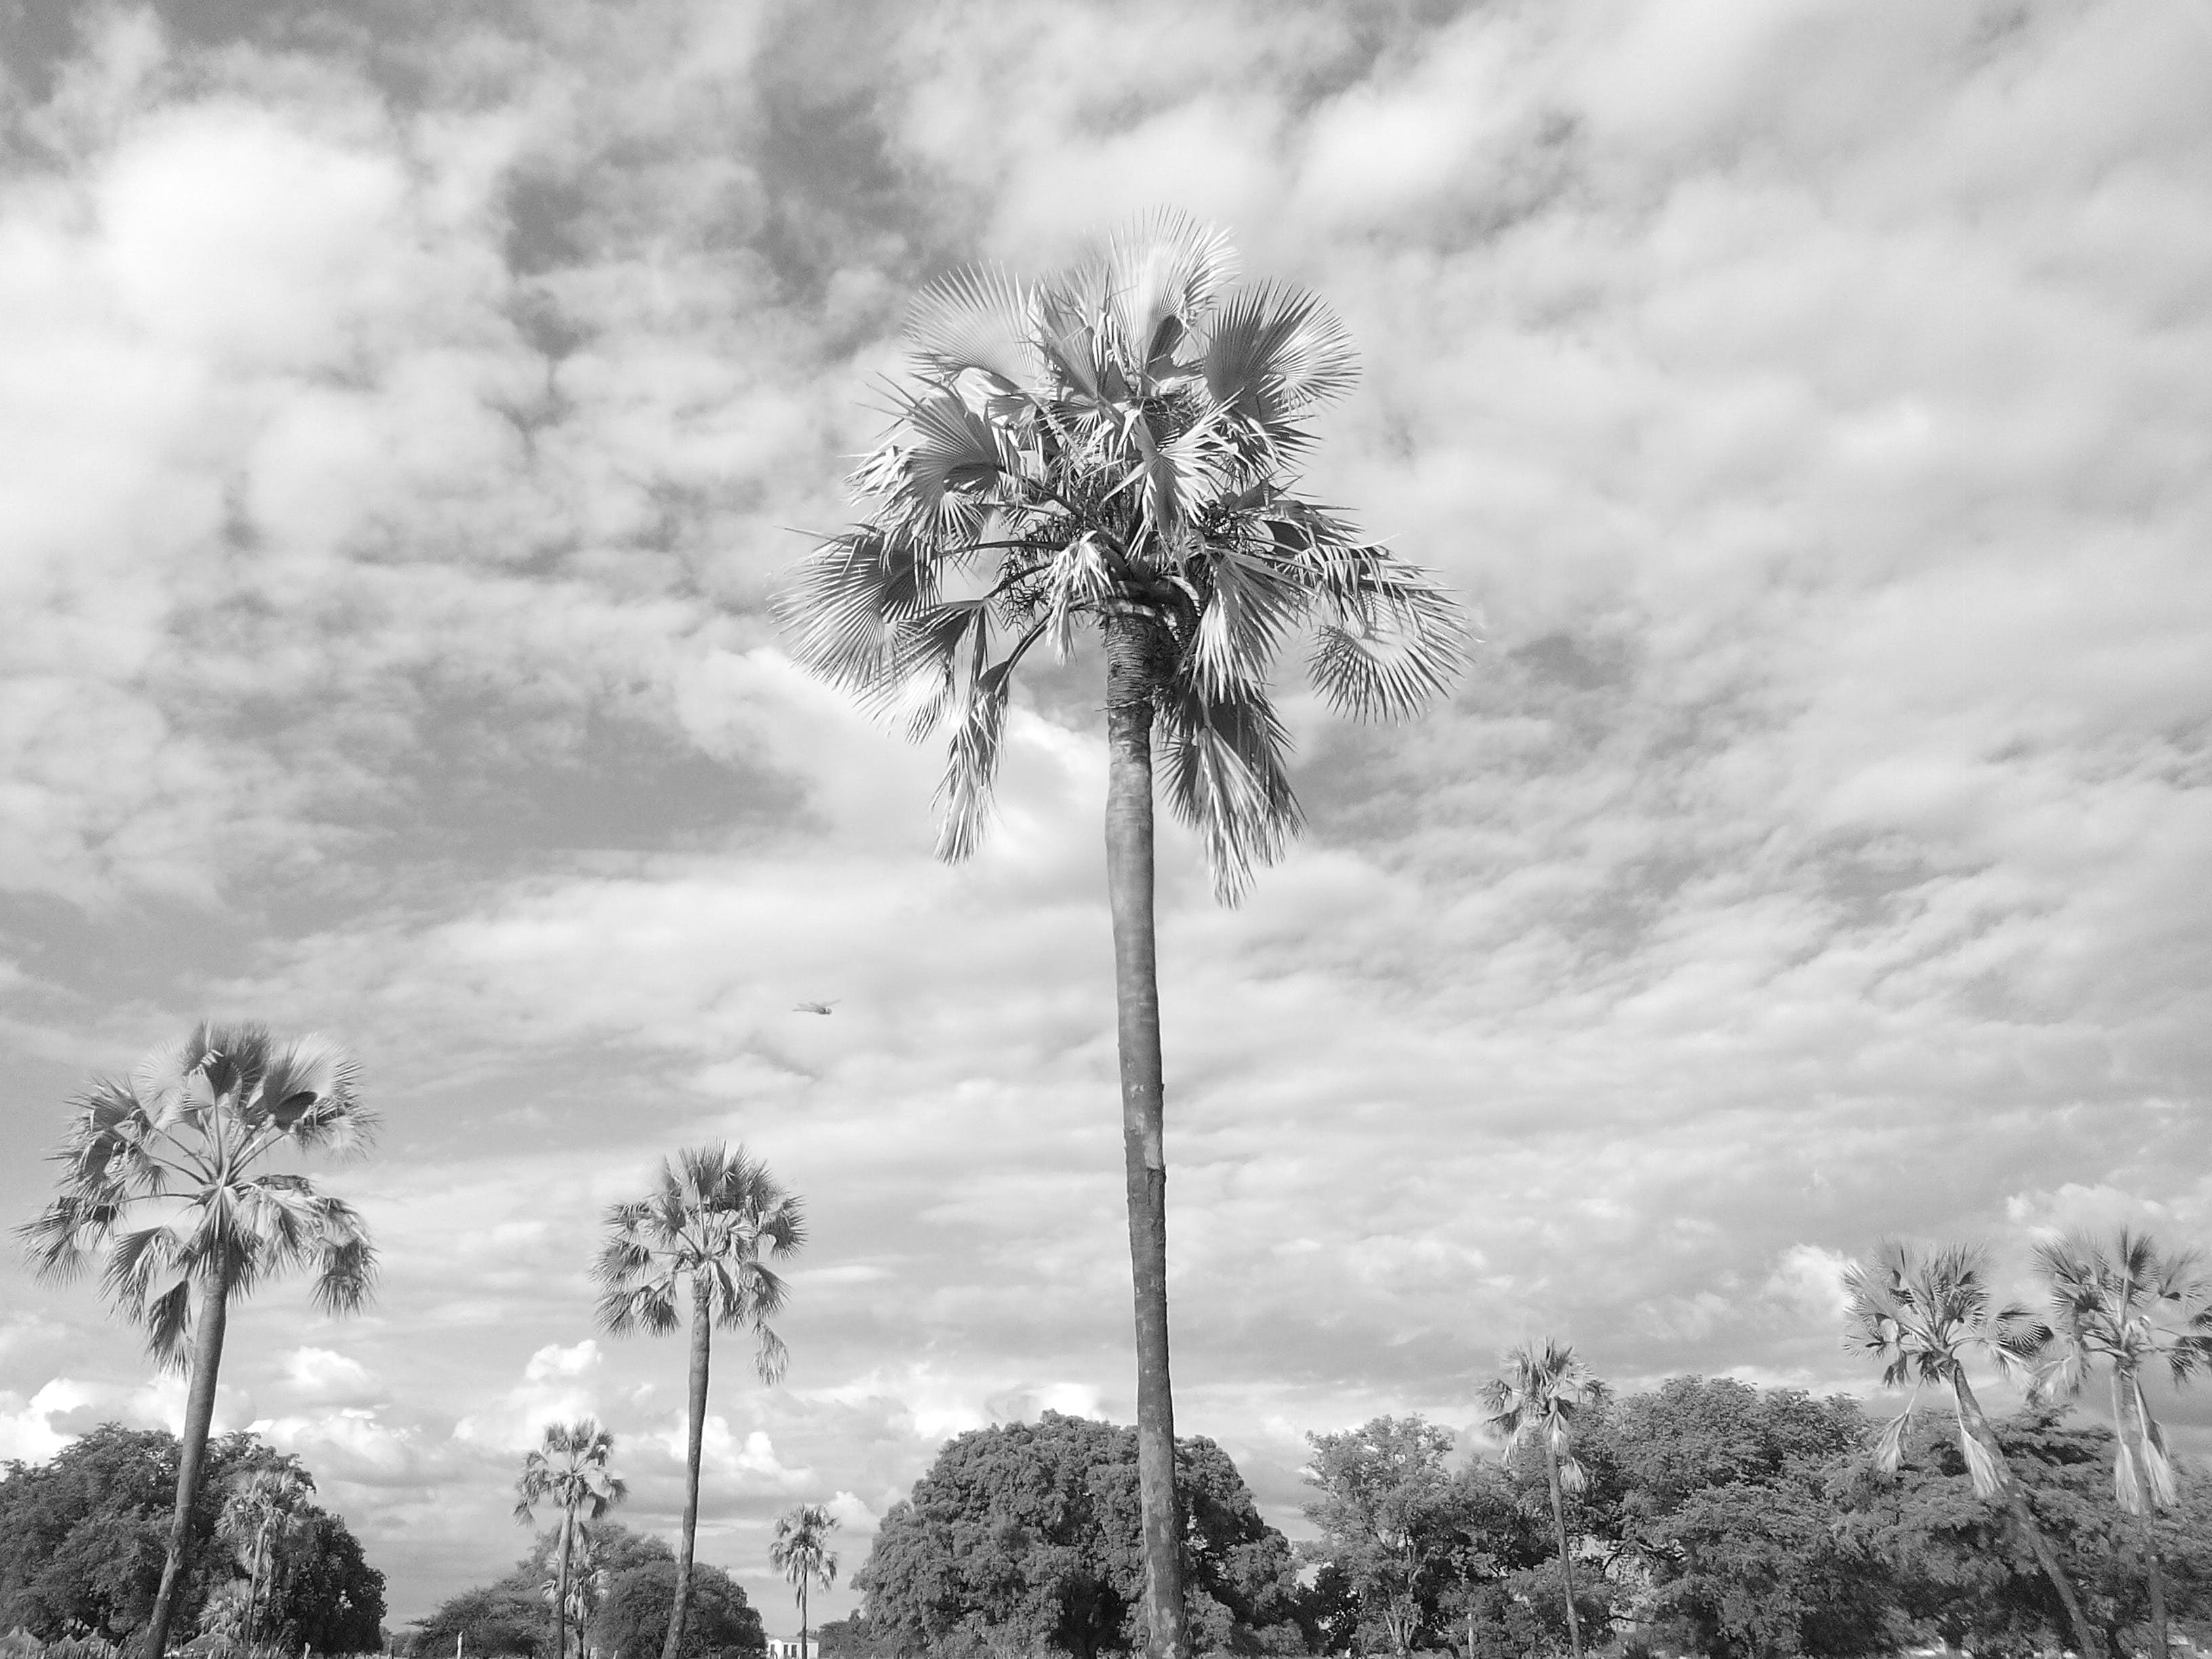 Free stock photo of African Palm trees